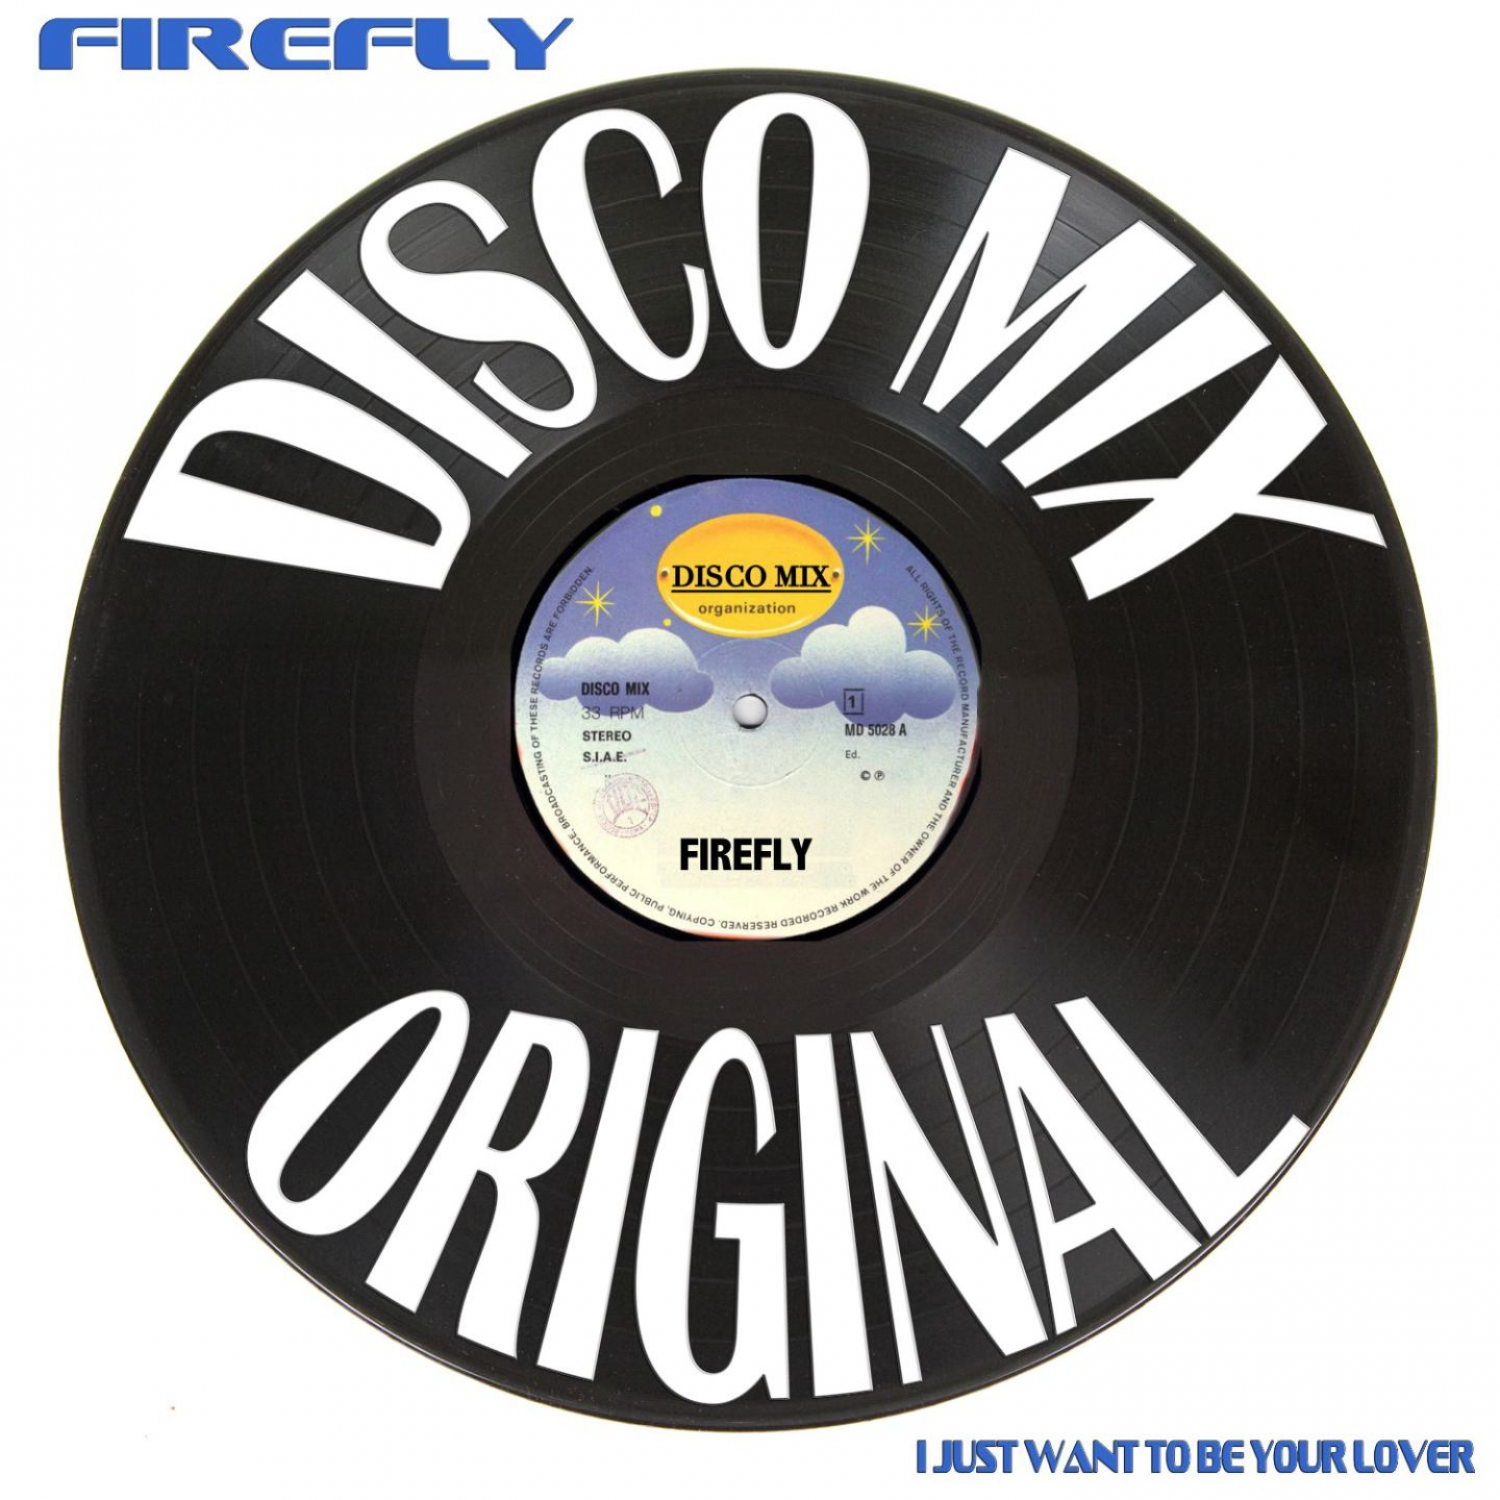 Firefly - I Just Want to Be Your Lover (Single Version)